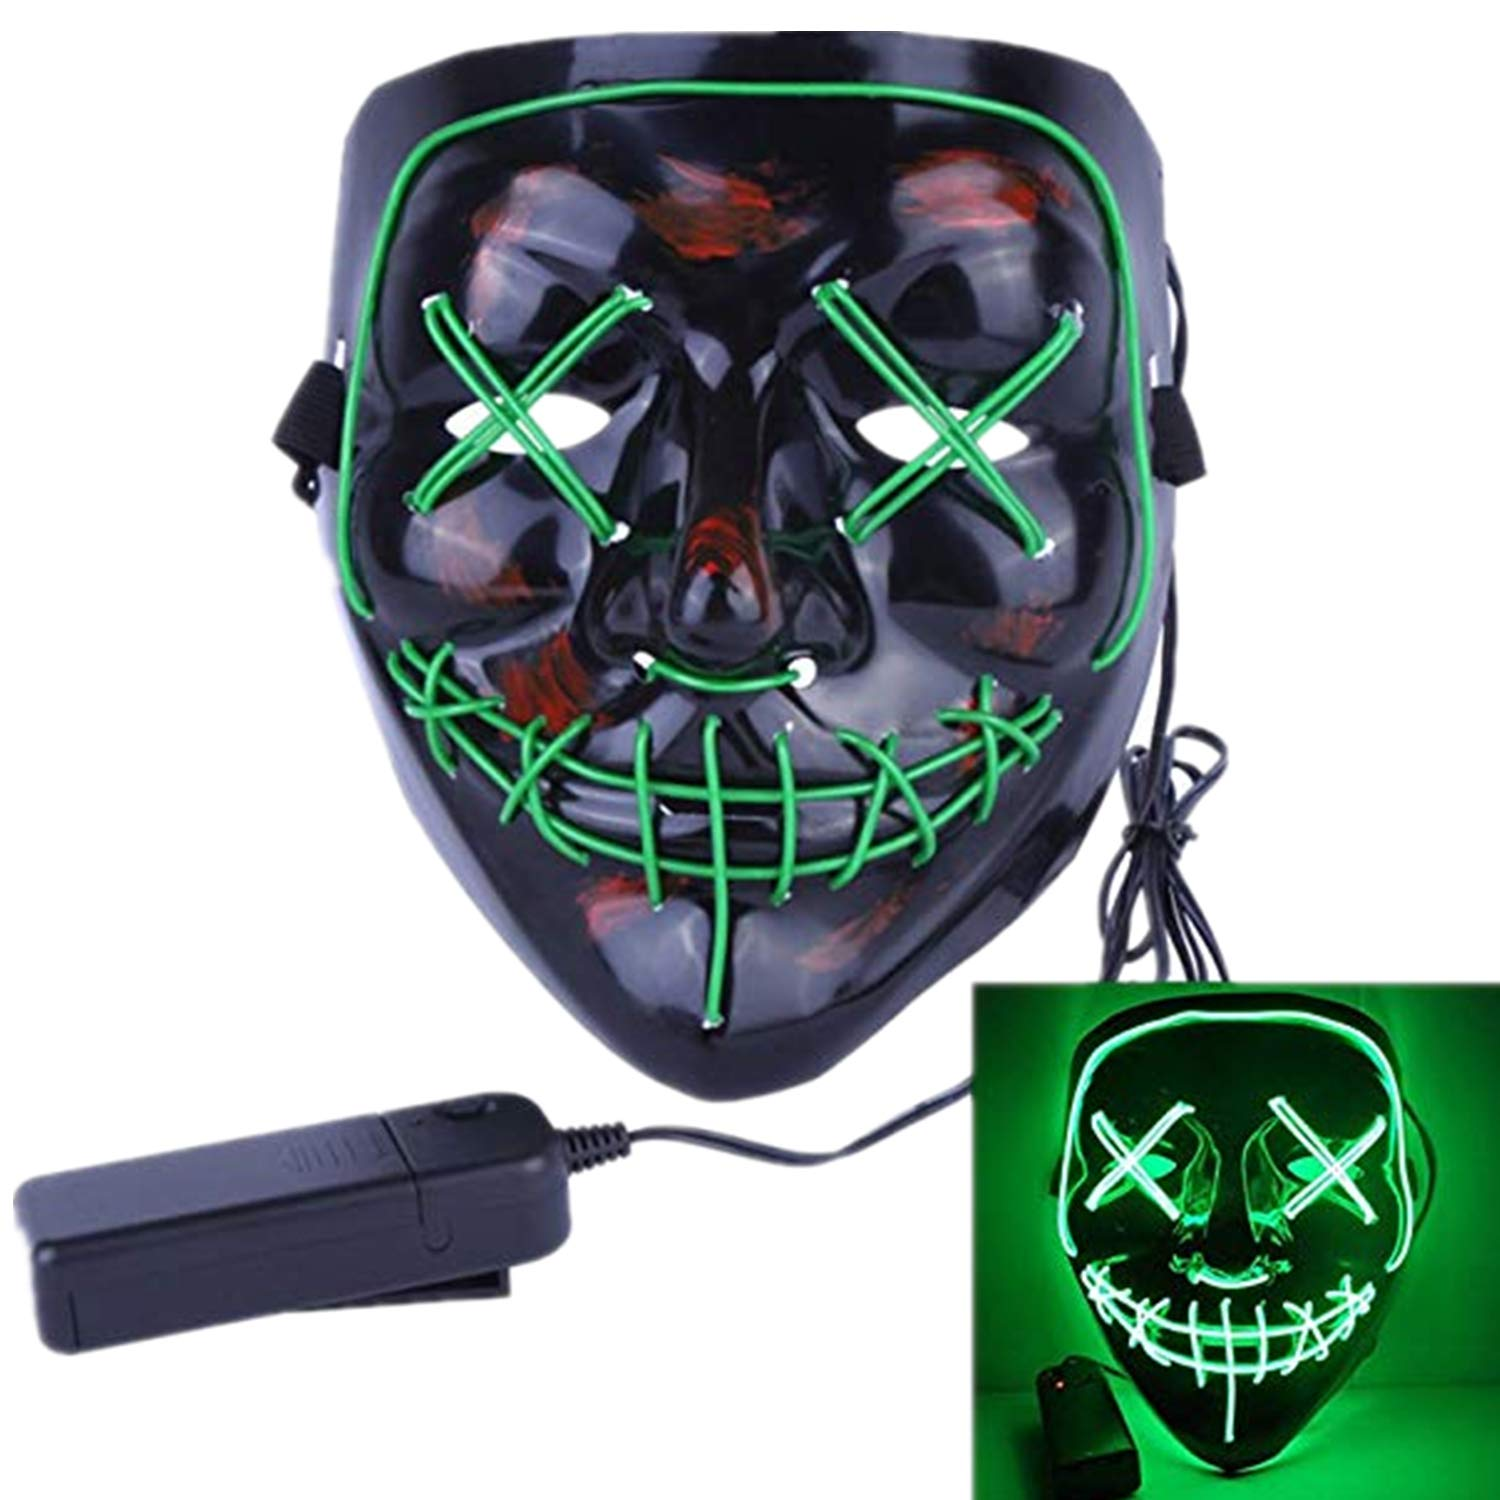 FZAY Halloween Mask LED Light up Purge Mask for Festival Cosplay Halloween Costume